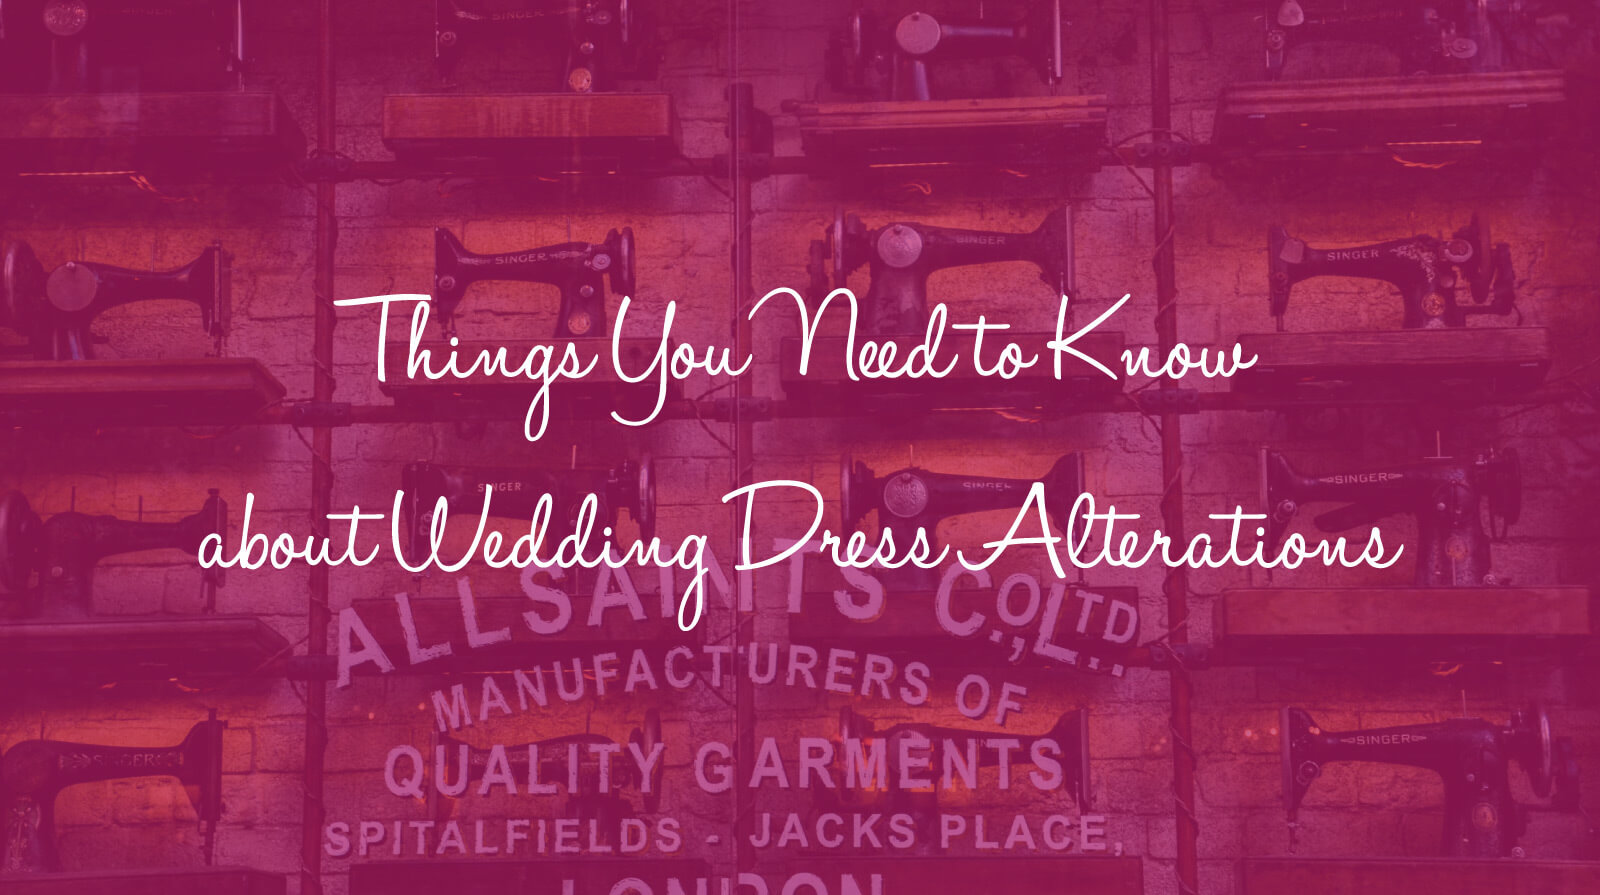 10 Things You Need to Know about Wedding Dress Alterations